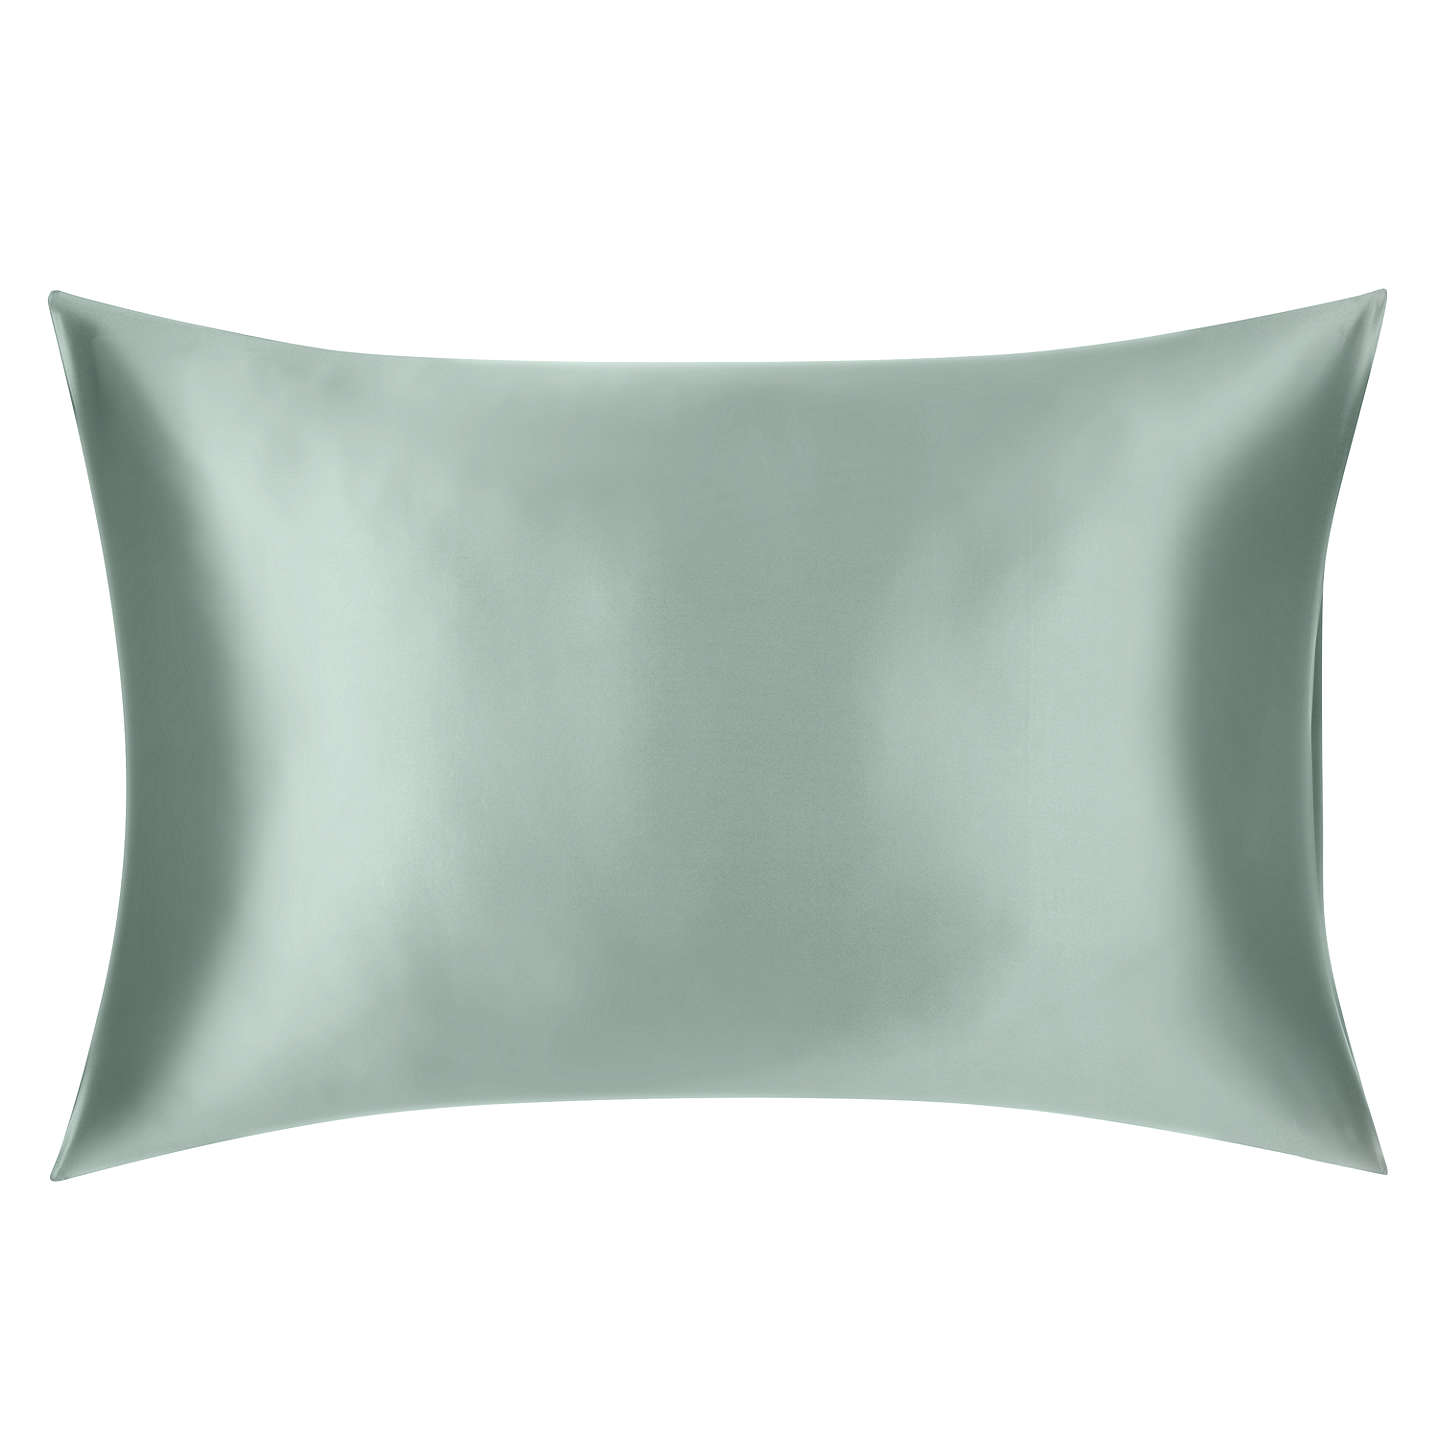 review boutique pillow company the pillows silk youtube product fine bedding